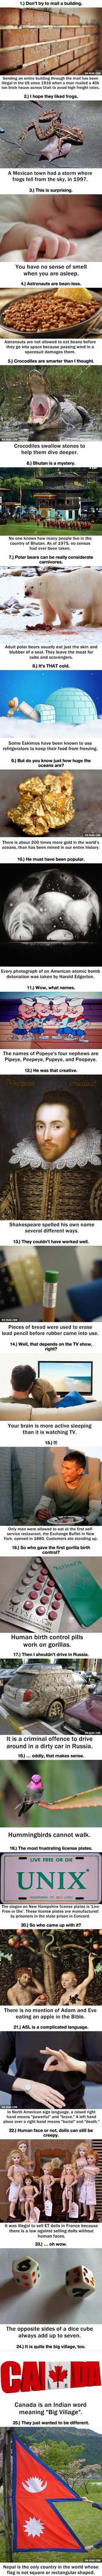 25 Completely Random Things You Didn't Know - http://www.x-lols.com/memes/25-completely-random-things-you-didnrsquot-know/